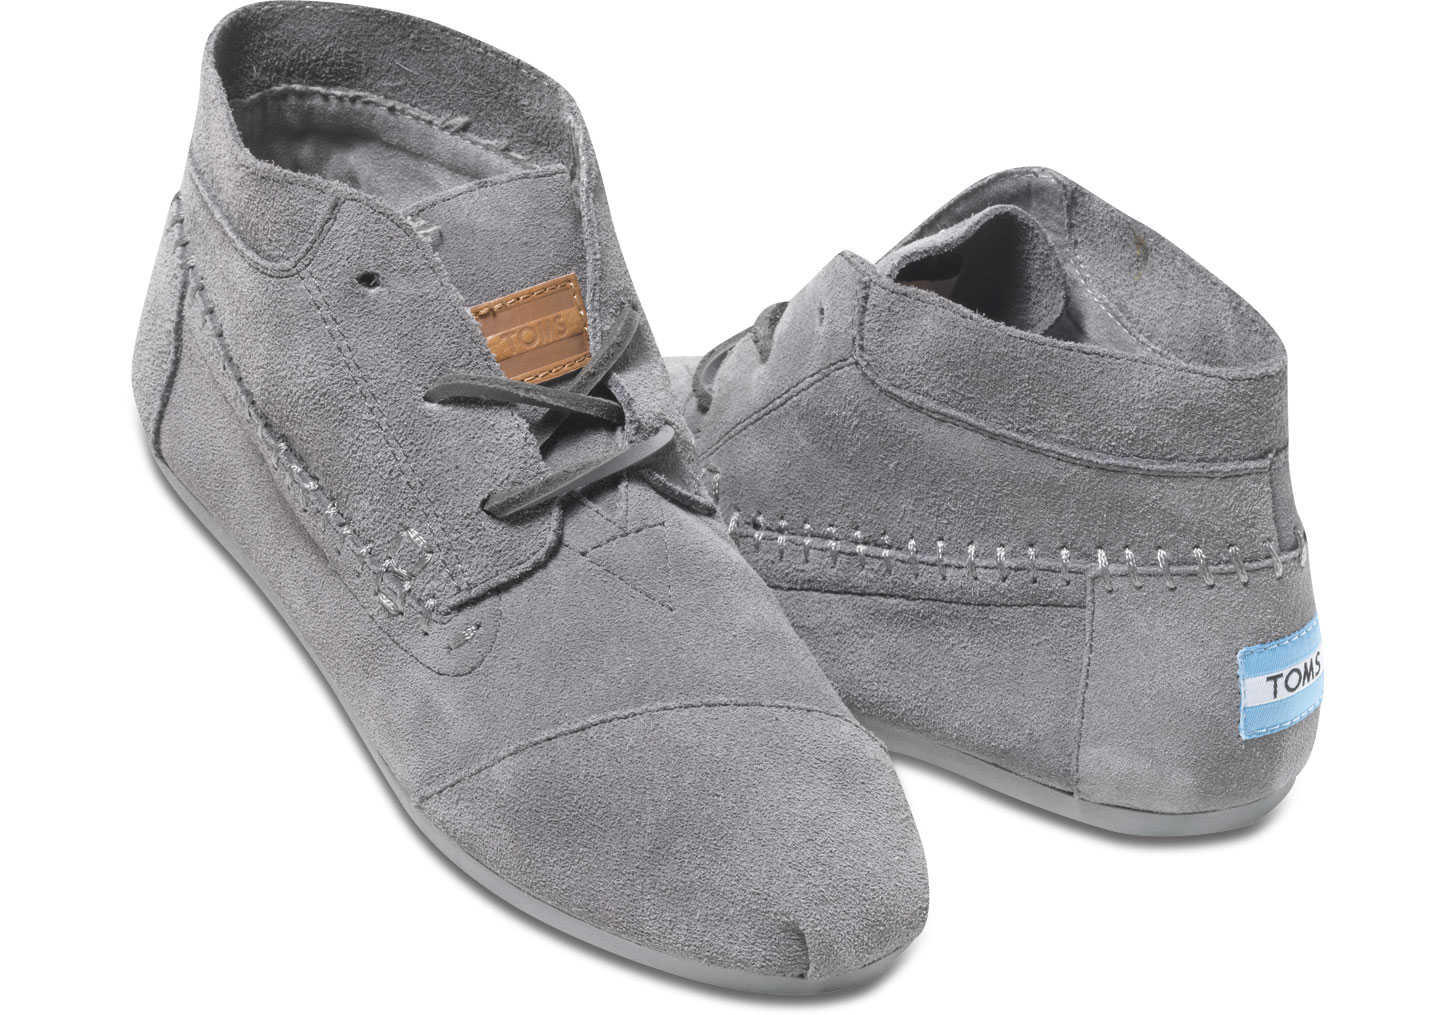 Model Womens Office Jamie Chelsea Boots GREY SUEDE Boots | EBay